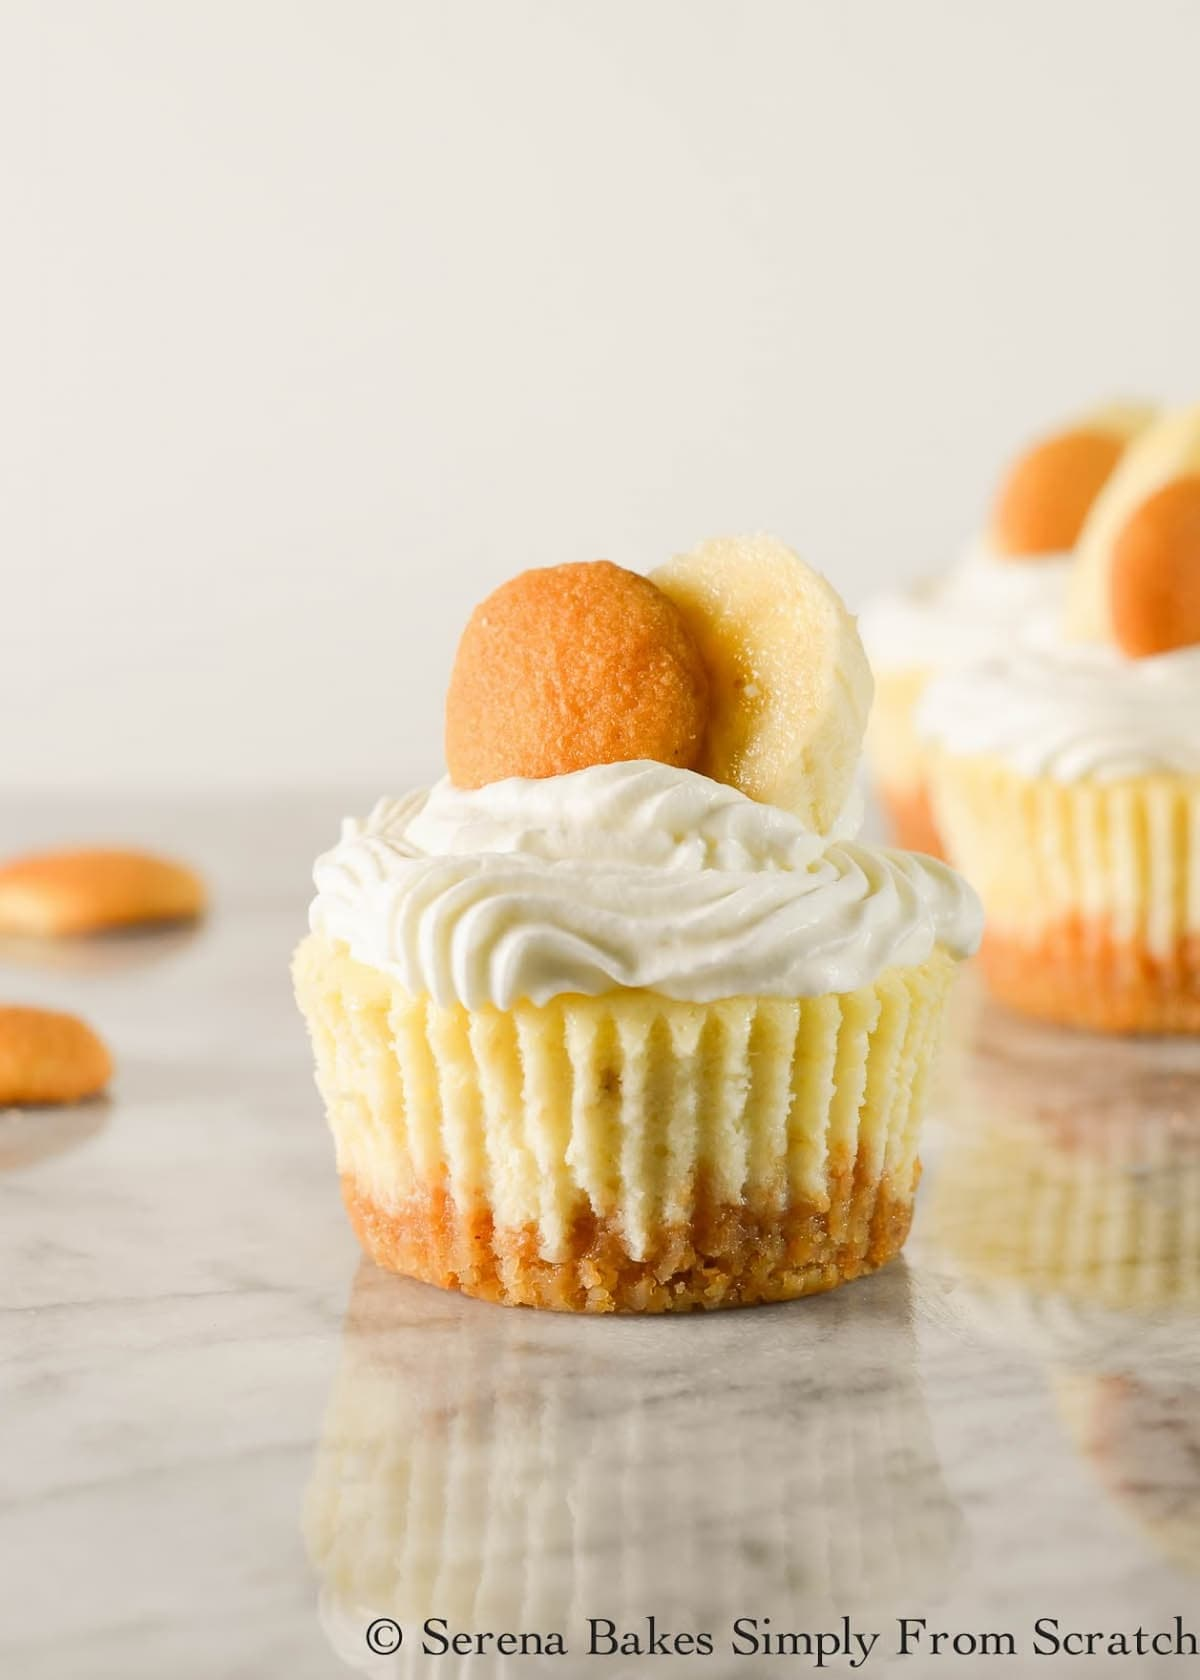 A Mini Banana Pudding Cheesecake topped with whipped cream, a mini nilla wafer, and slice of banana with 2 additional nilla wafers on white marble with additional Mini Banana Pudding Cheesecakes in the background.